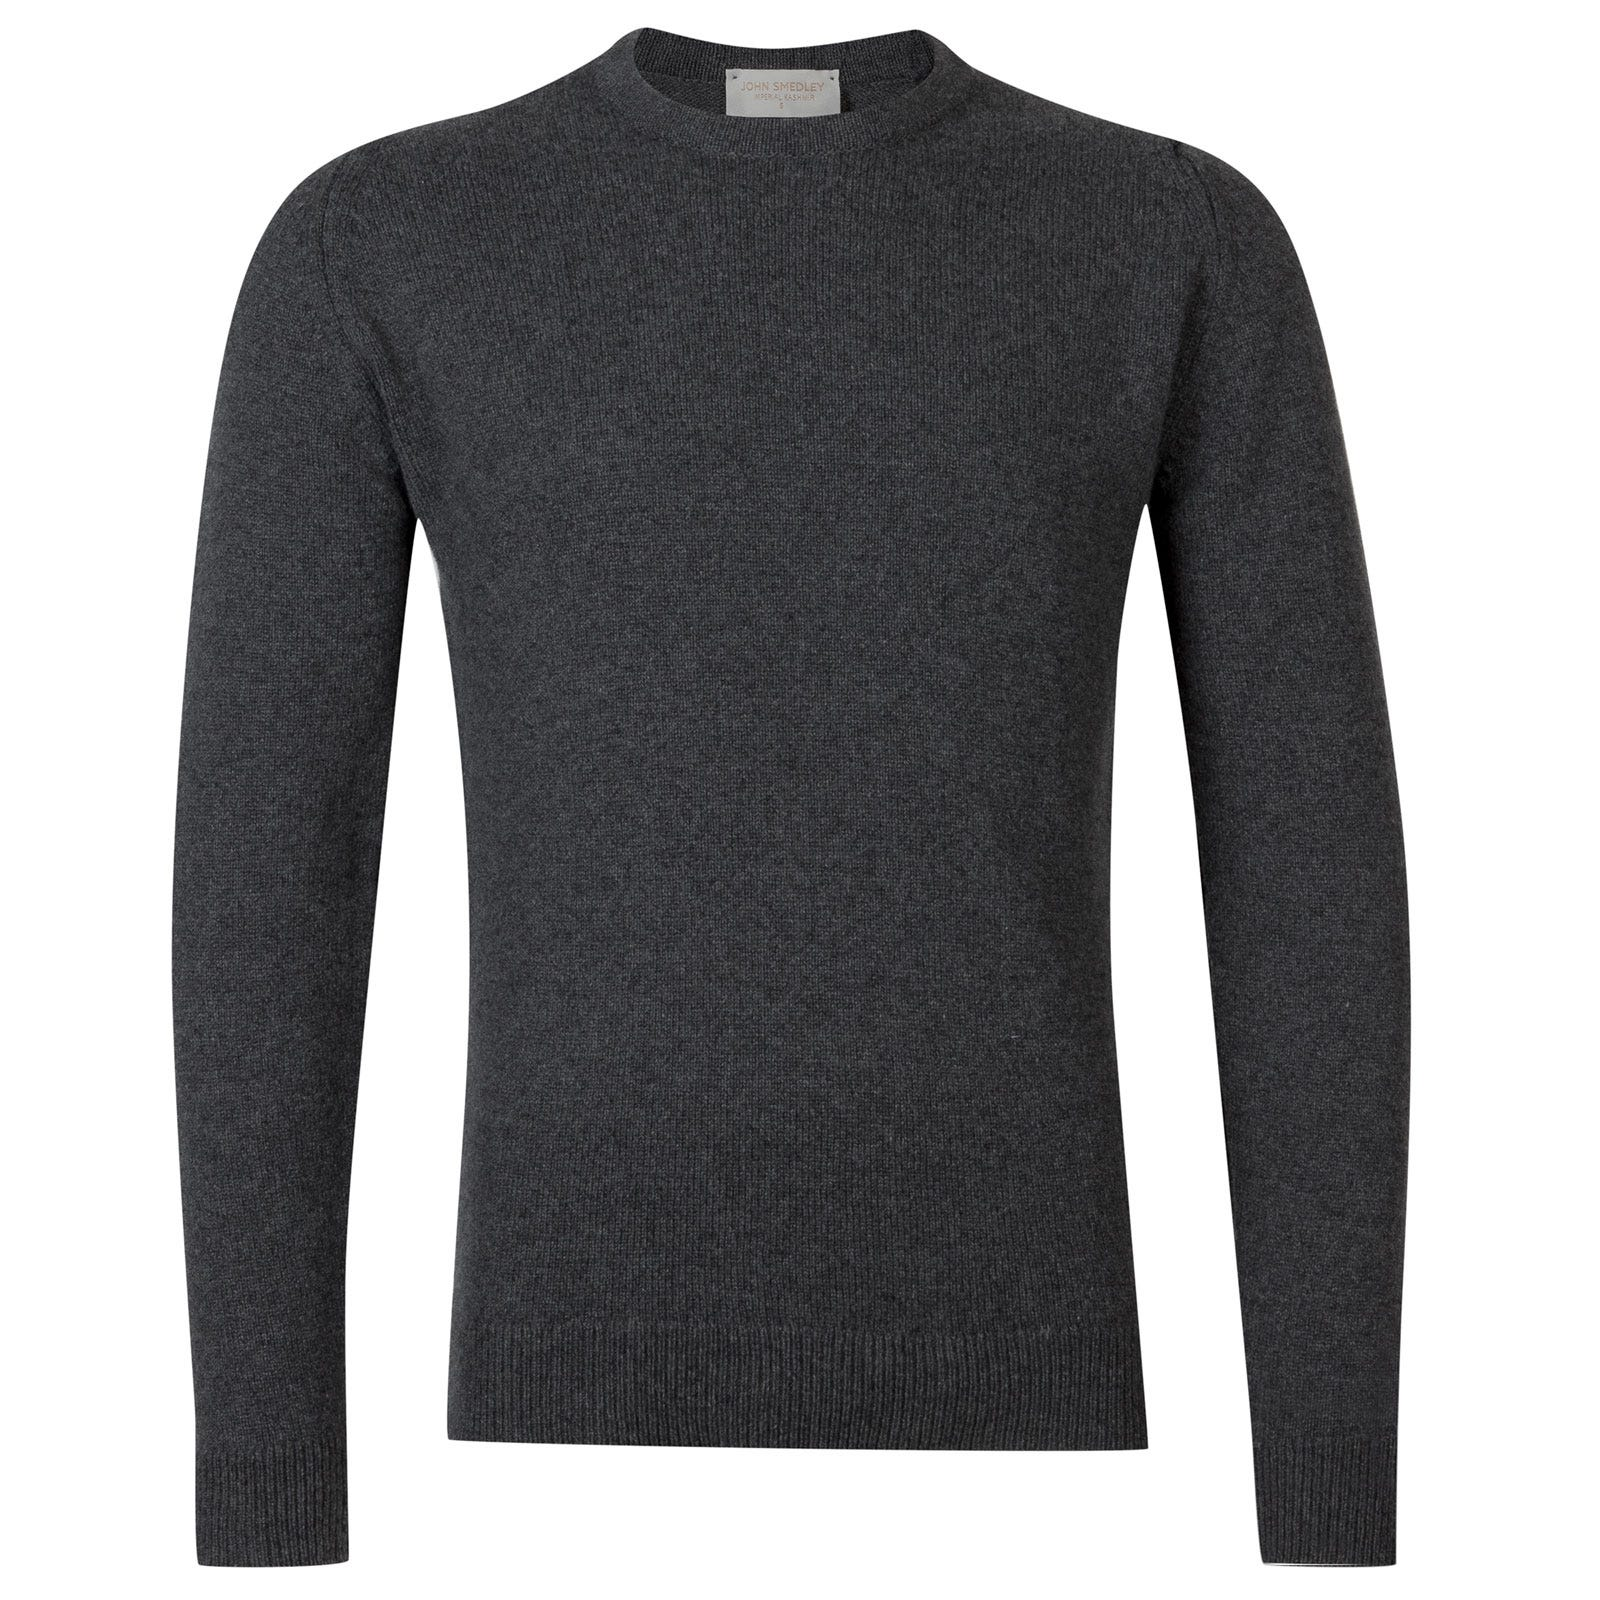 John Smedley Crowford Wool and Cashmere Pullover in Charcoal-M